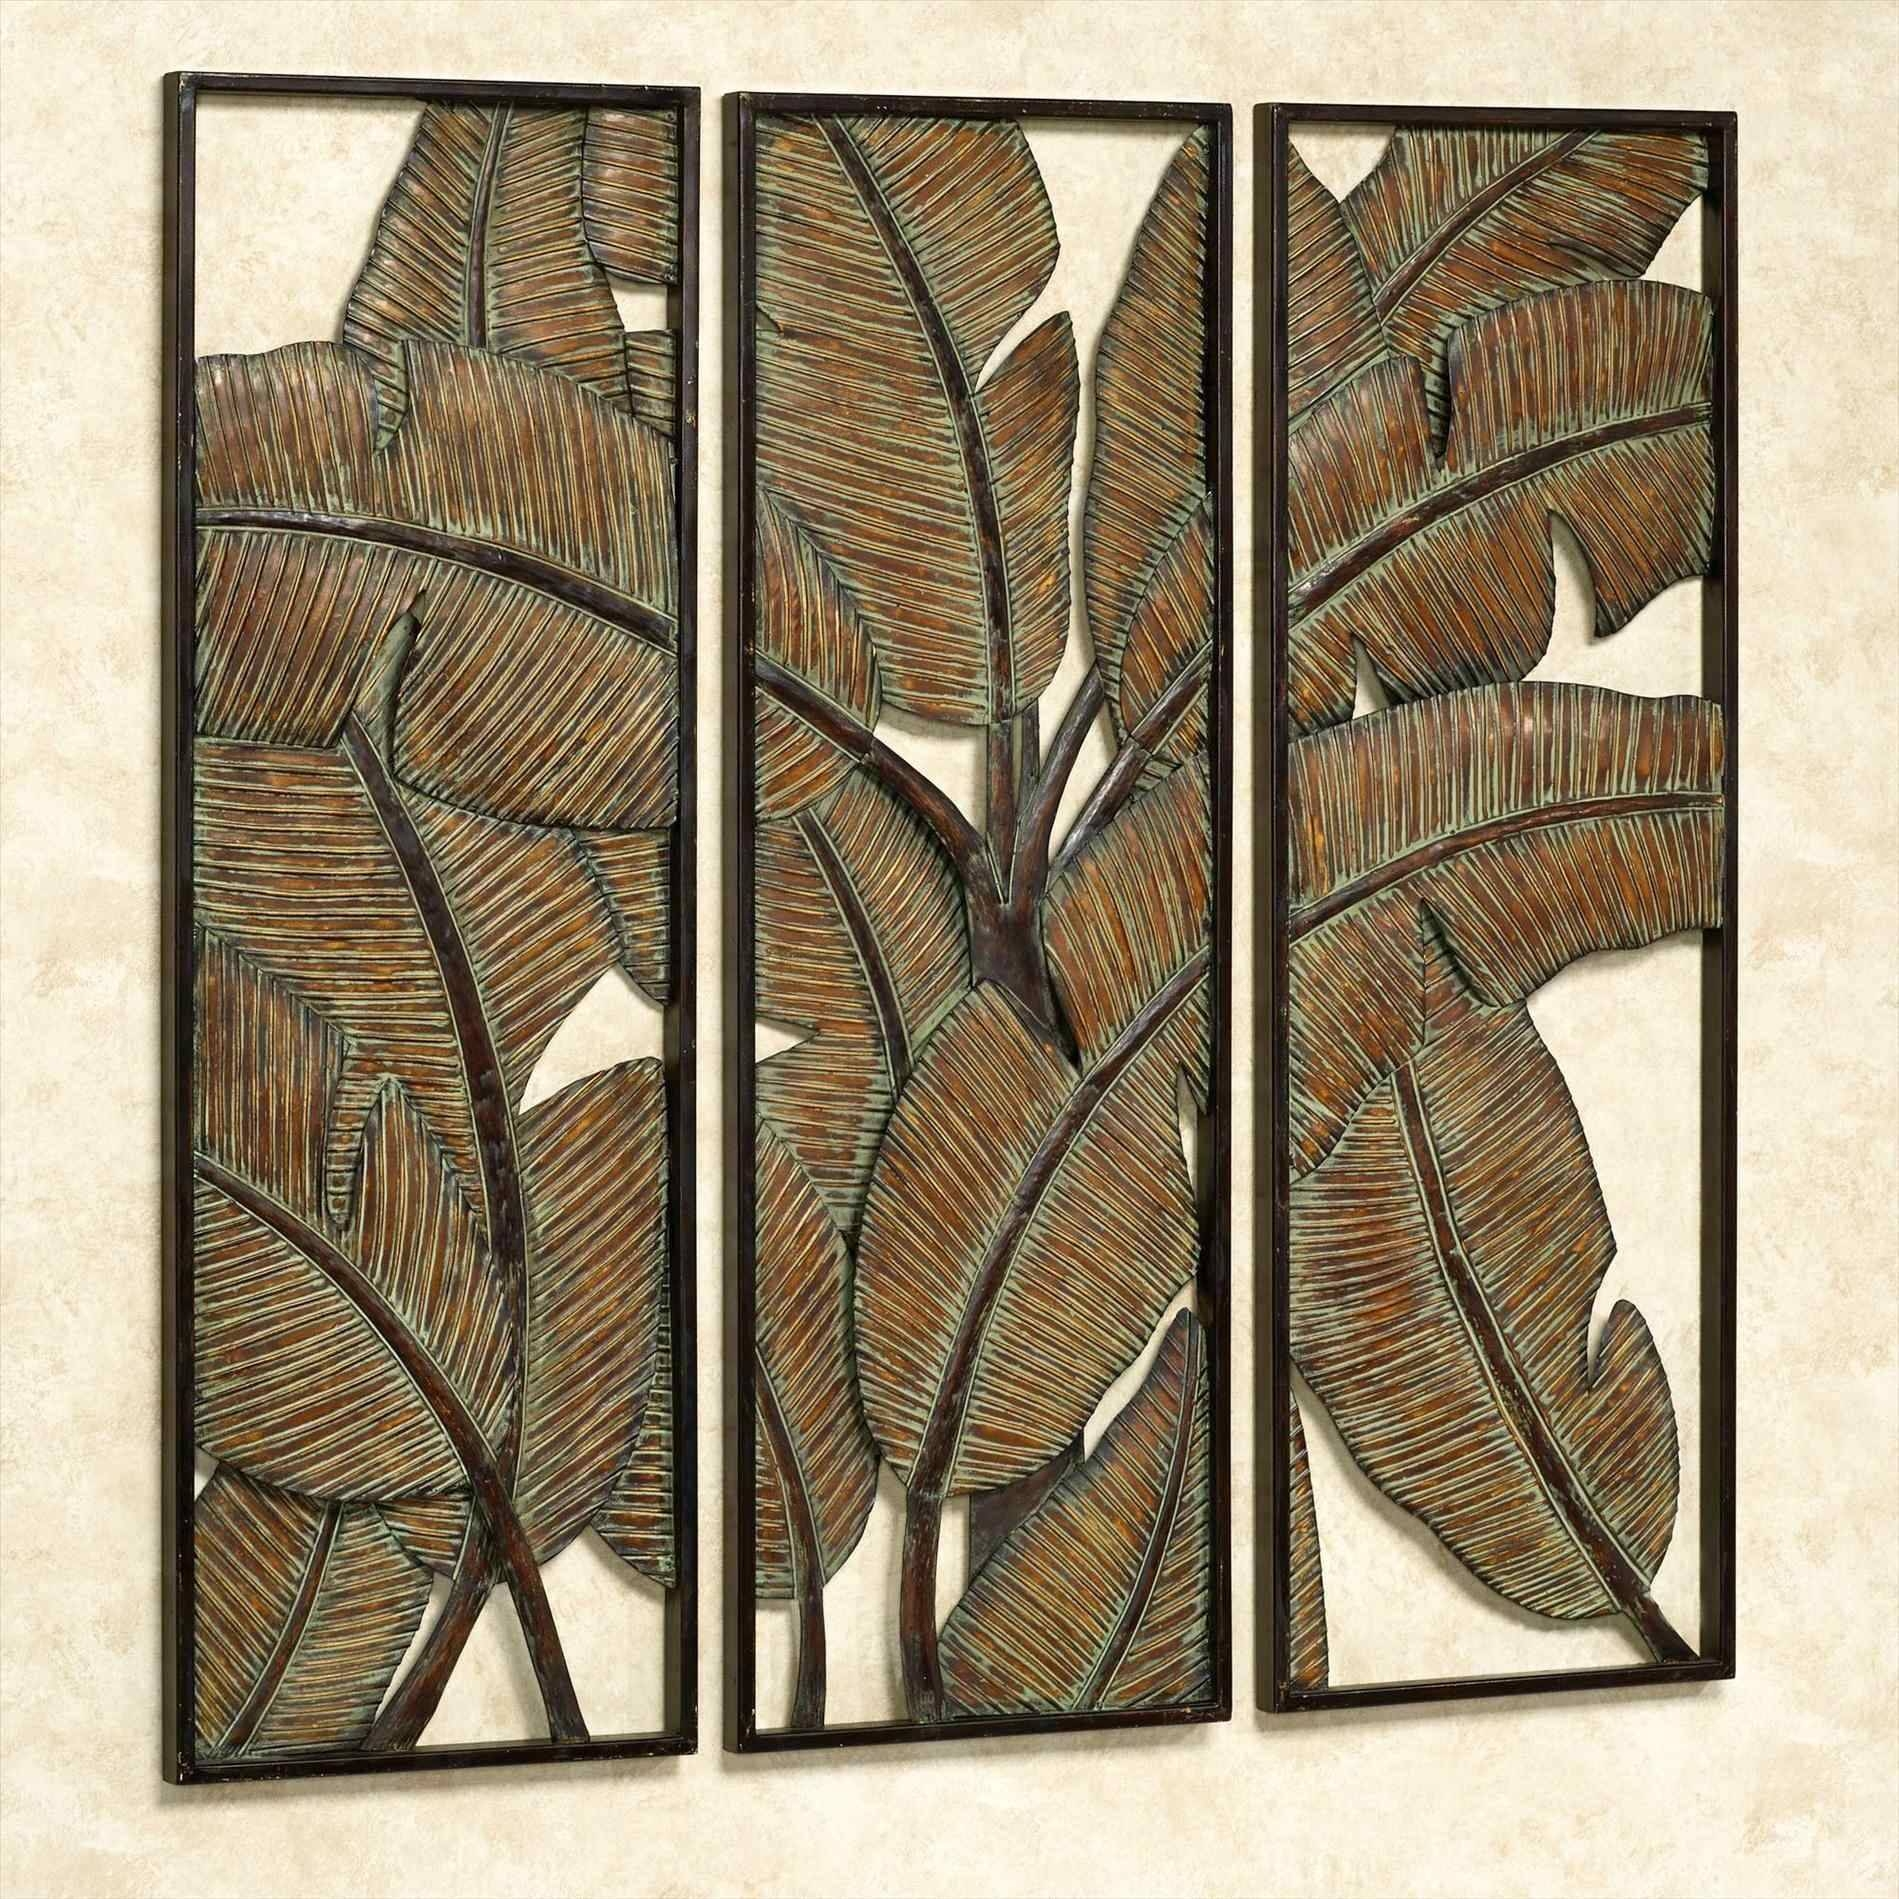 Metal Wall Decor Tags Wrought Iron Ornament Bed Framed Art Ideas With Regard To Most Up To Date Wood Framed Metal Wall Art (View 14 of 20)